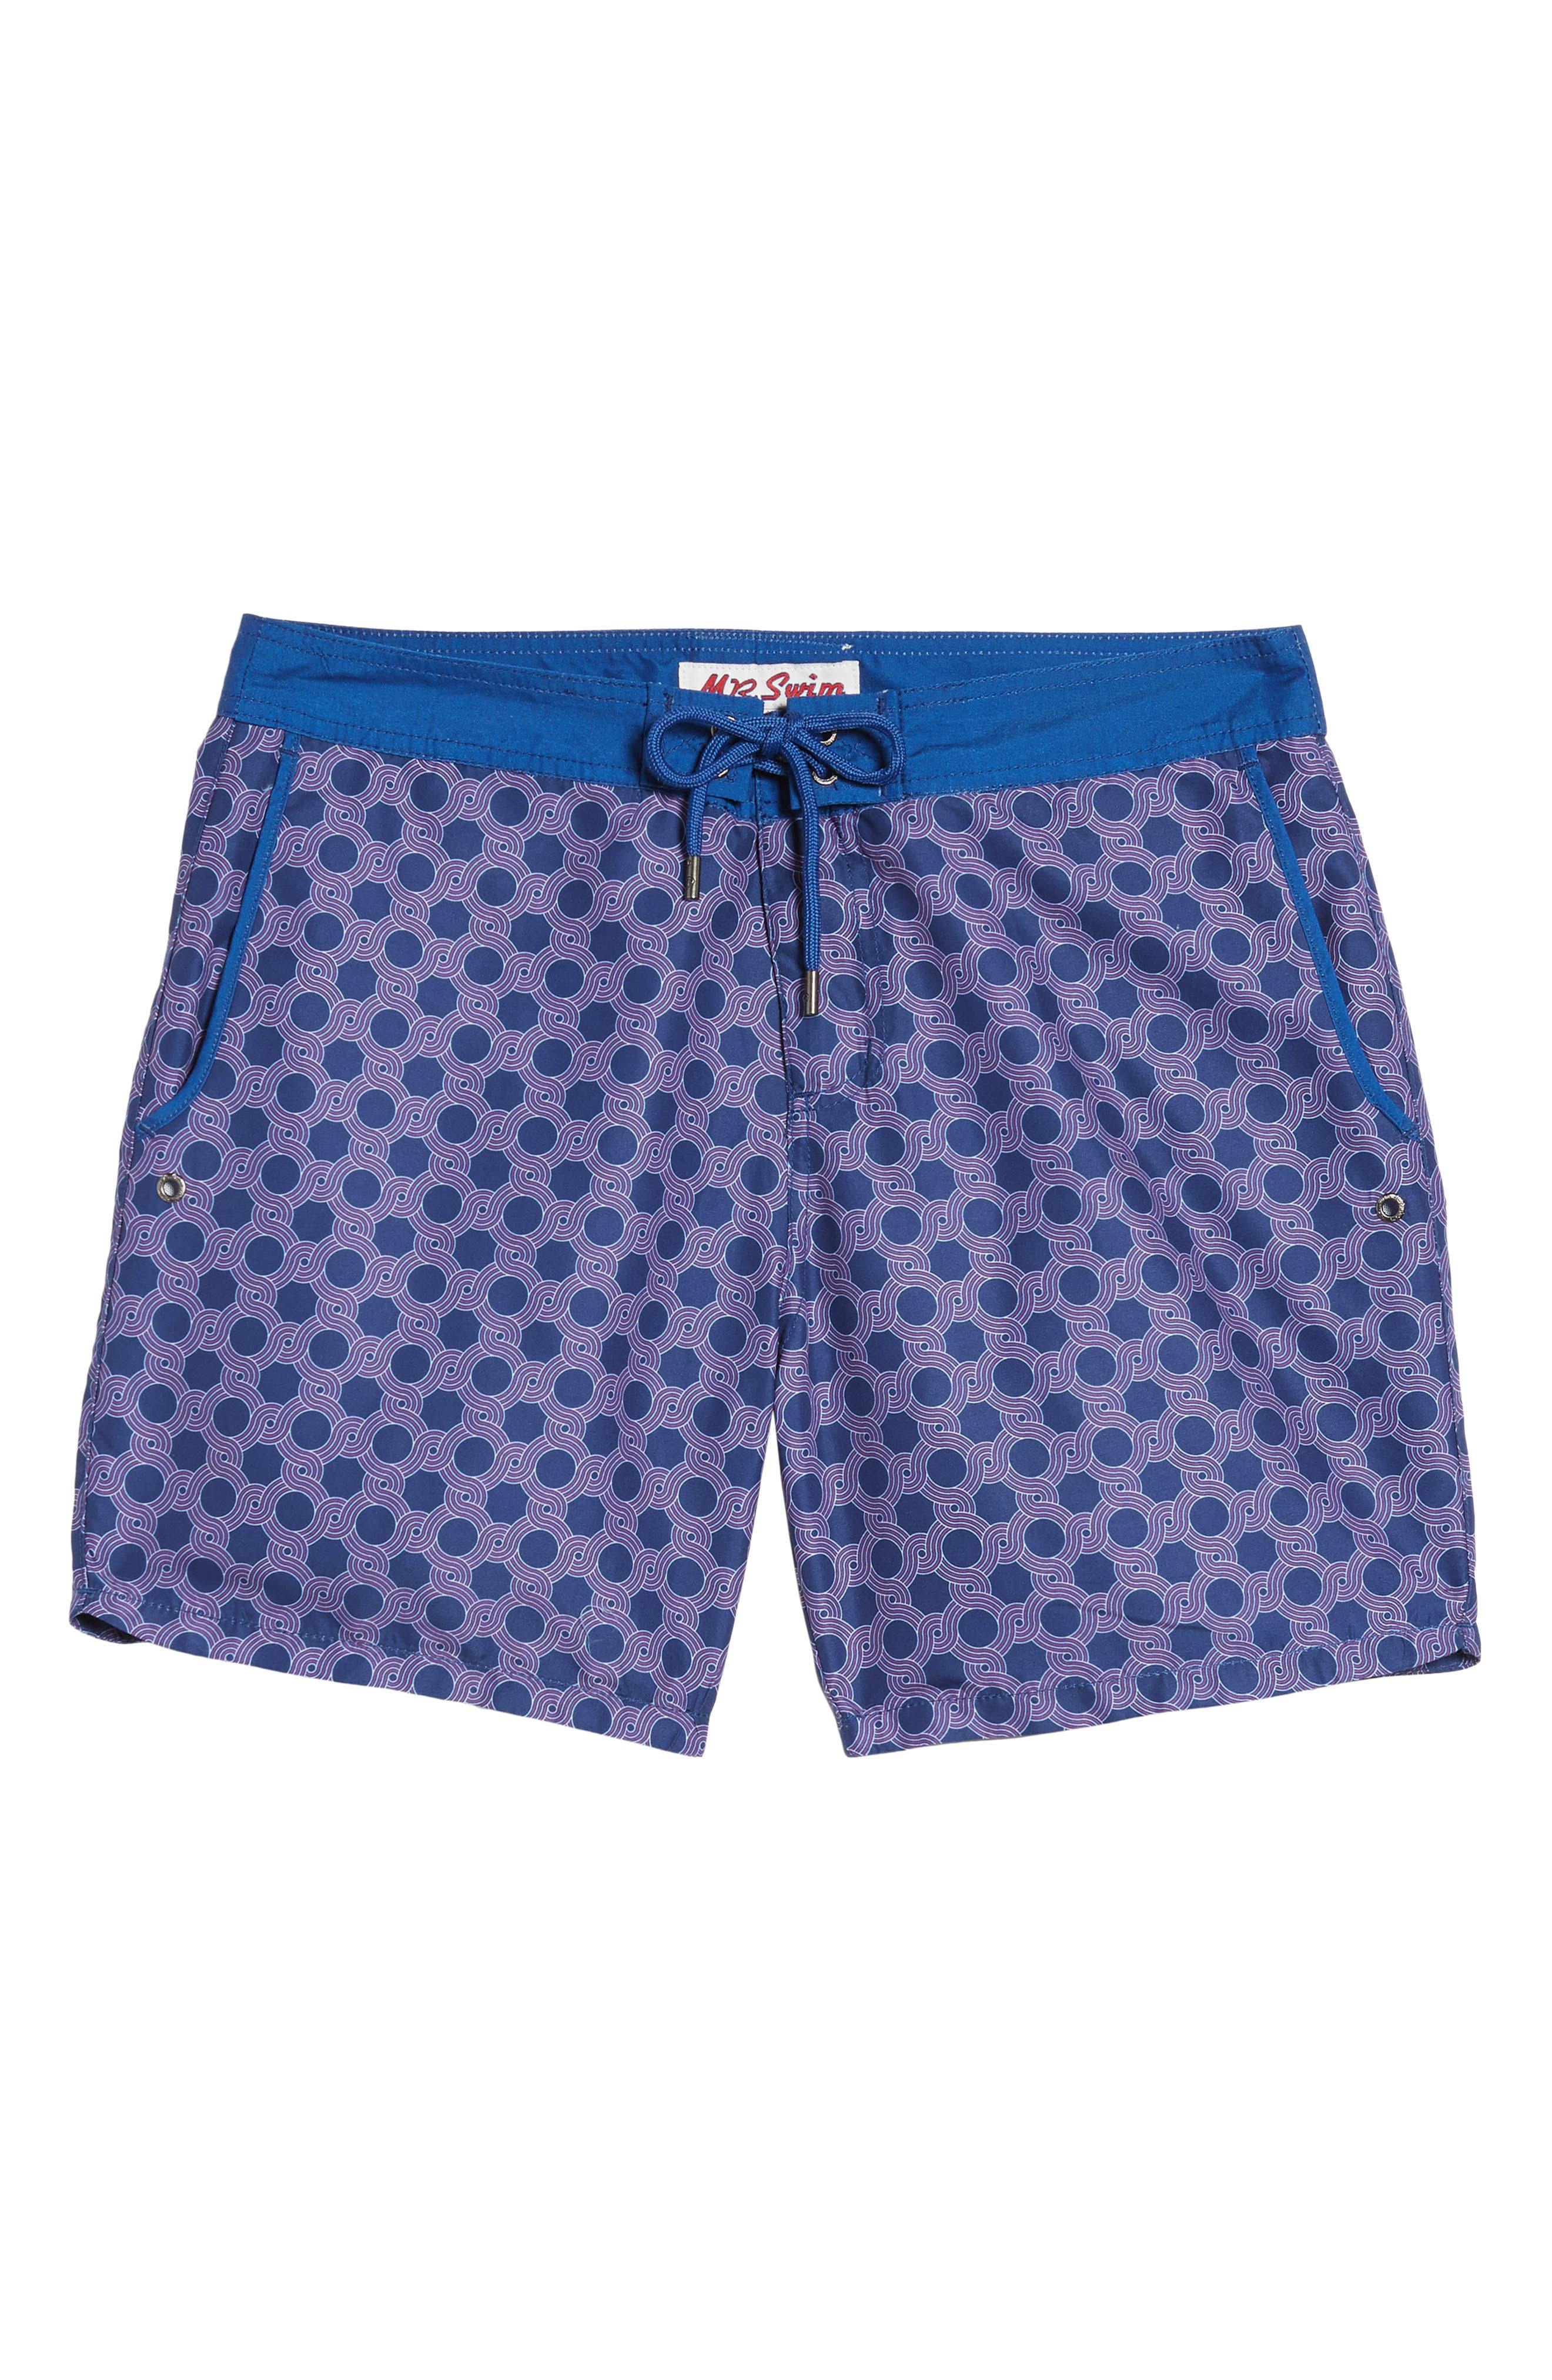 Mr. Swim Figure Eight Print Swim Trunks,                             Alternate thumbnail 6, color,                             NAVY